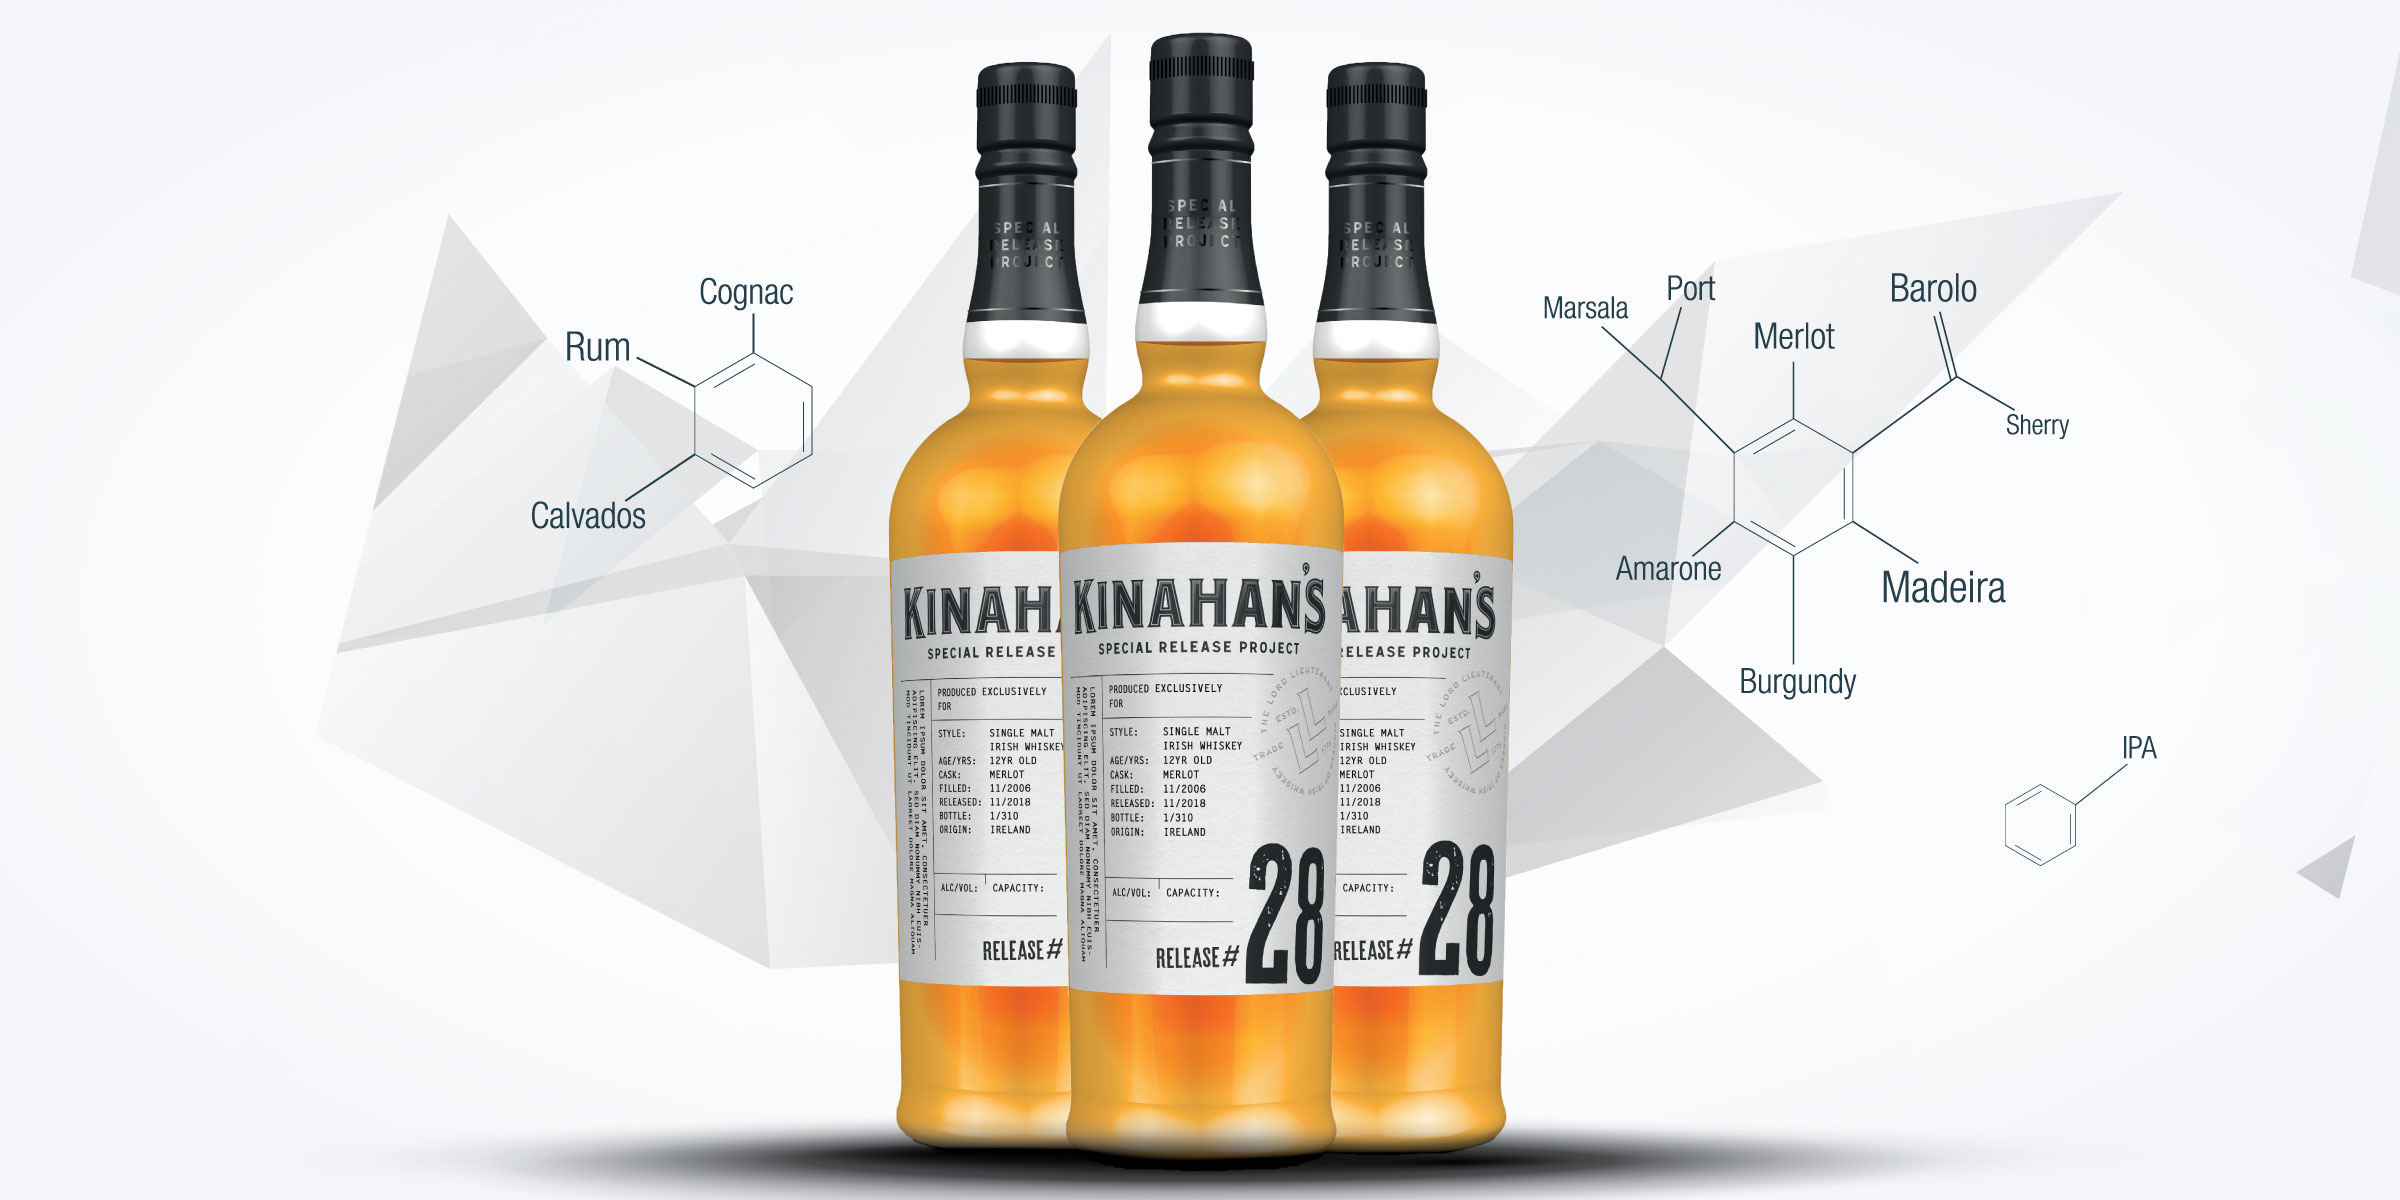 Kinahans whiskey special release project